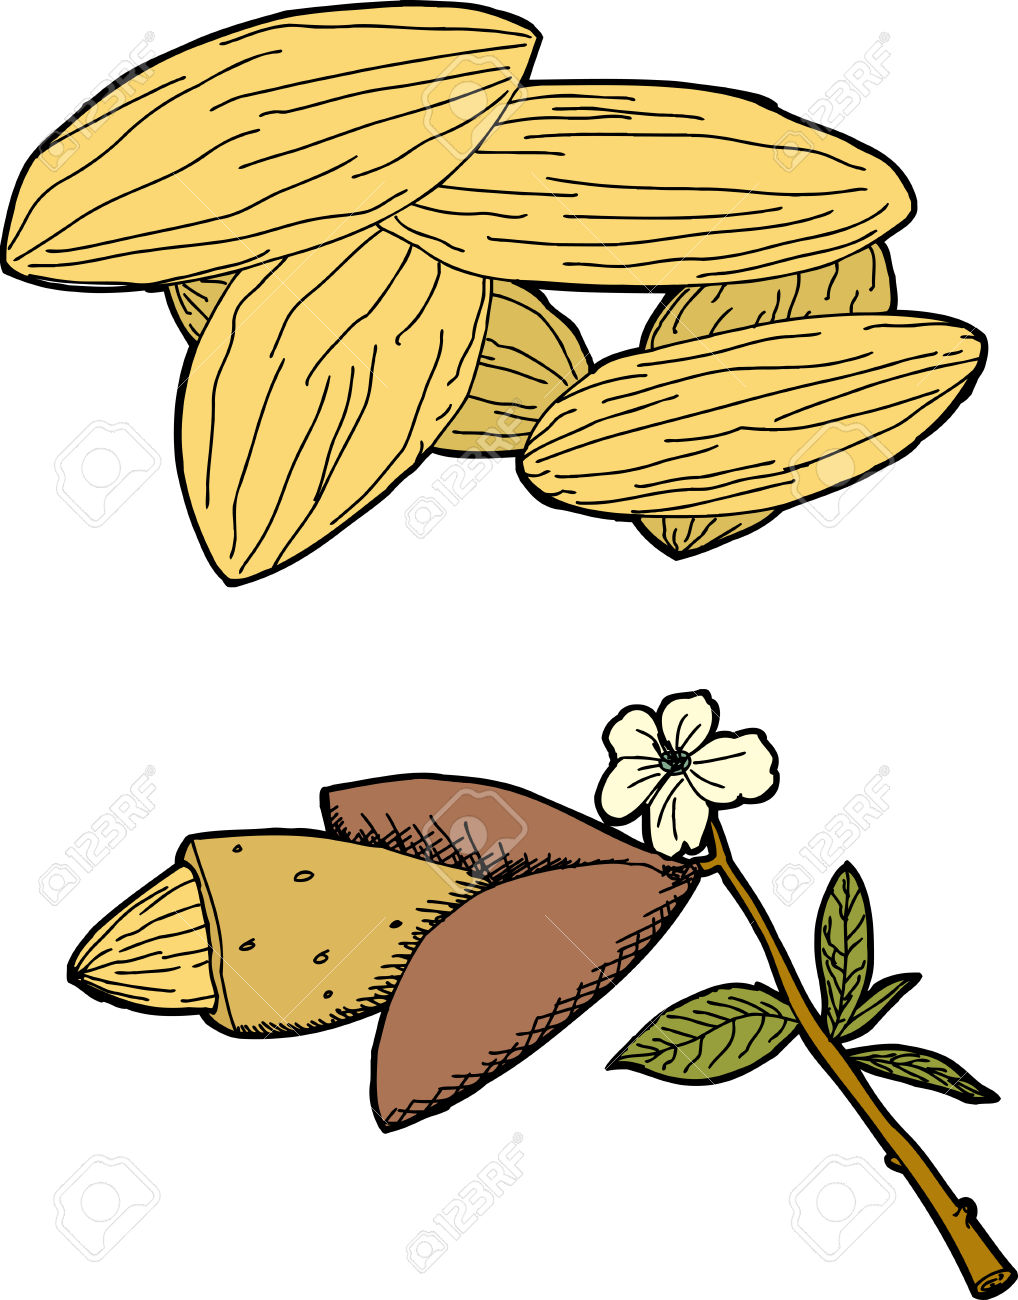 Hand Drawn Graphic Of Almonds And Almond Tree Branch Royalty Free.